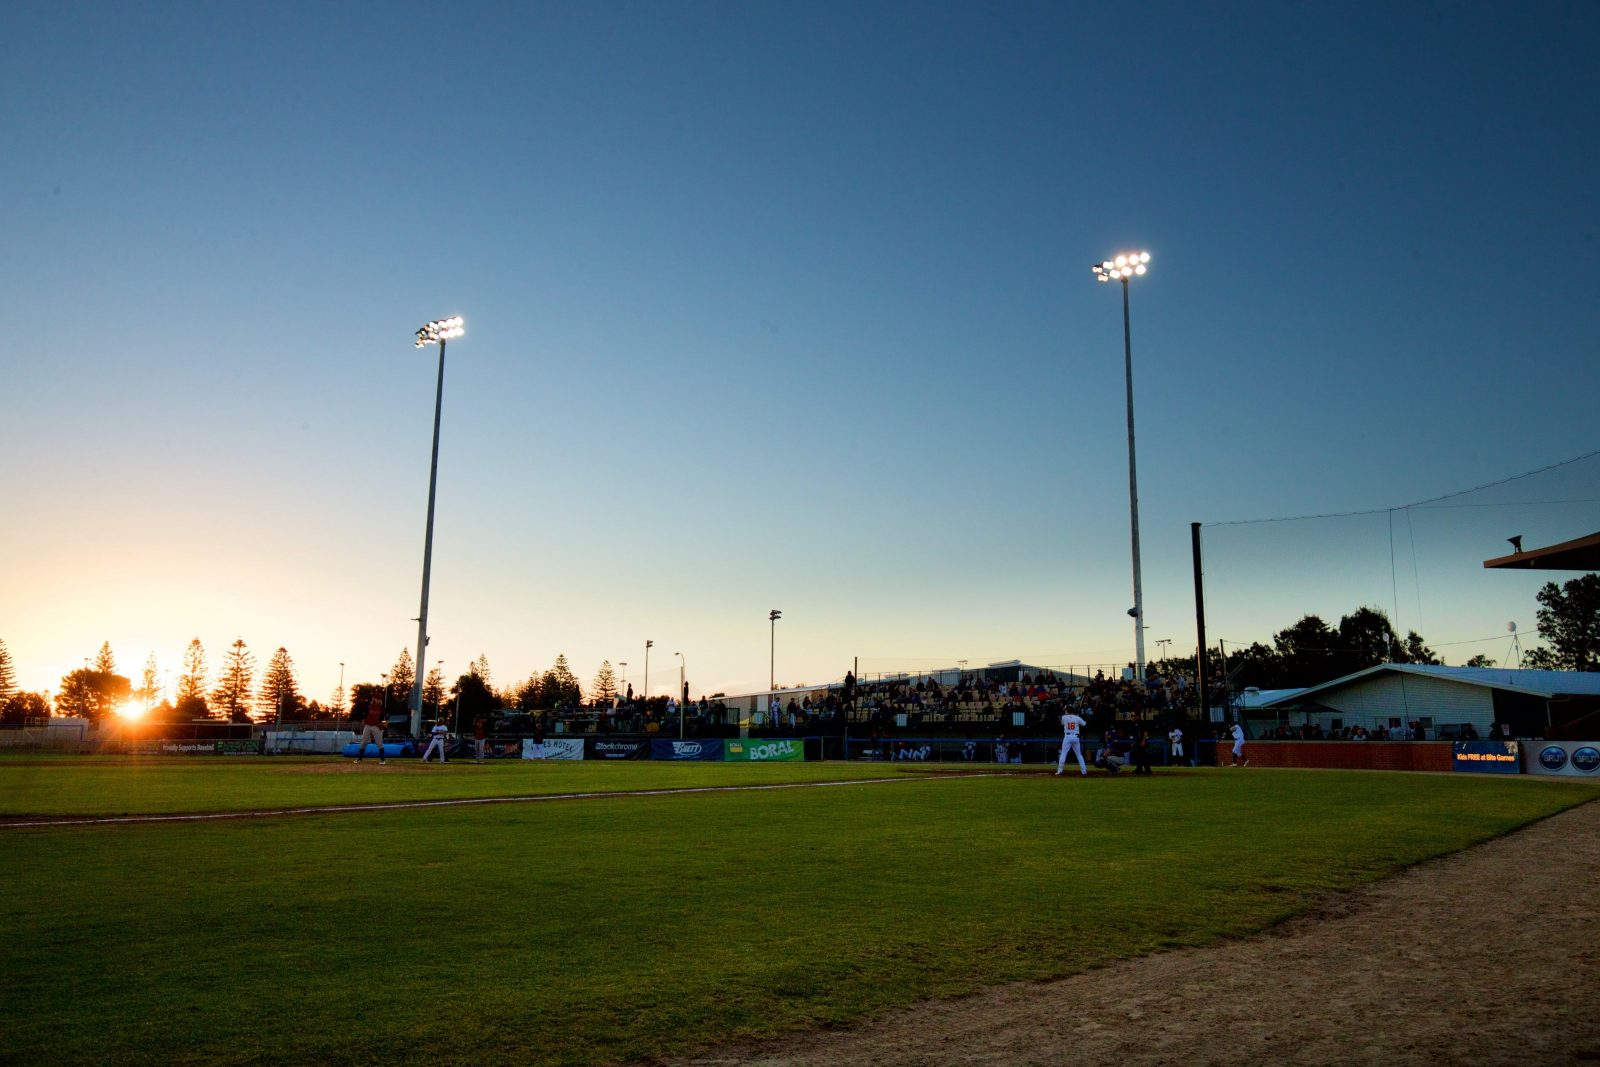 West Beach Parks at sunset during an Adelaide Giants game